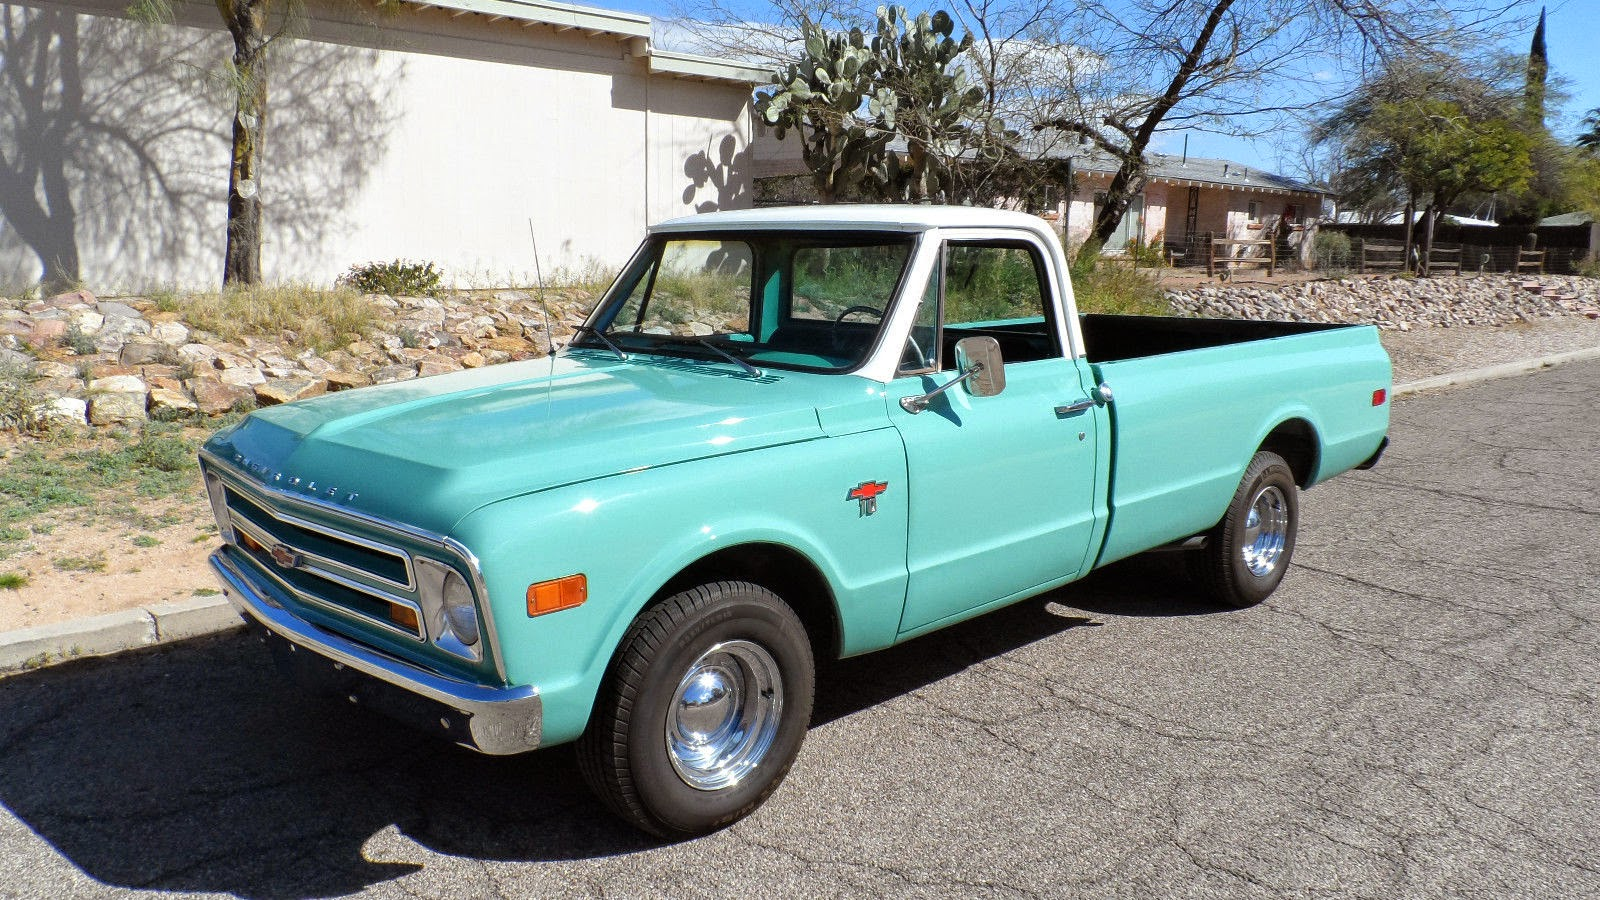 All American Classic Cars 1968 Chevrolet C10 Pickup Truck Chevy 4x4 Conversion